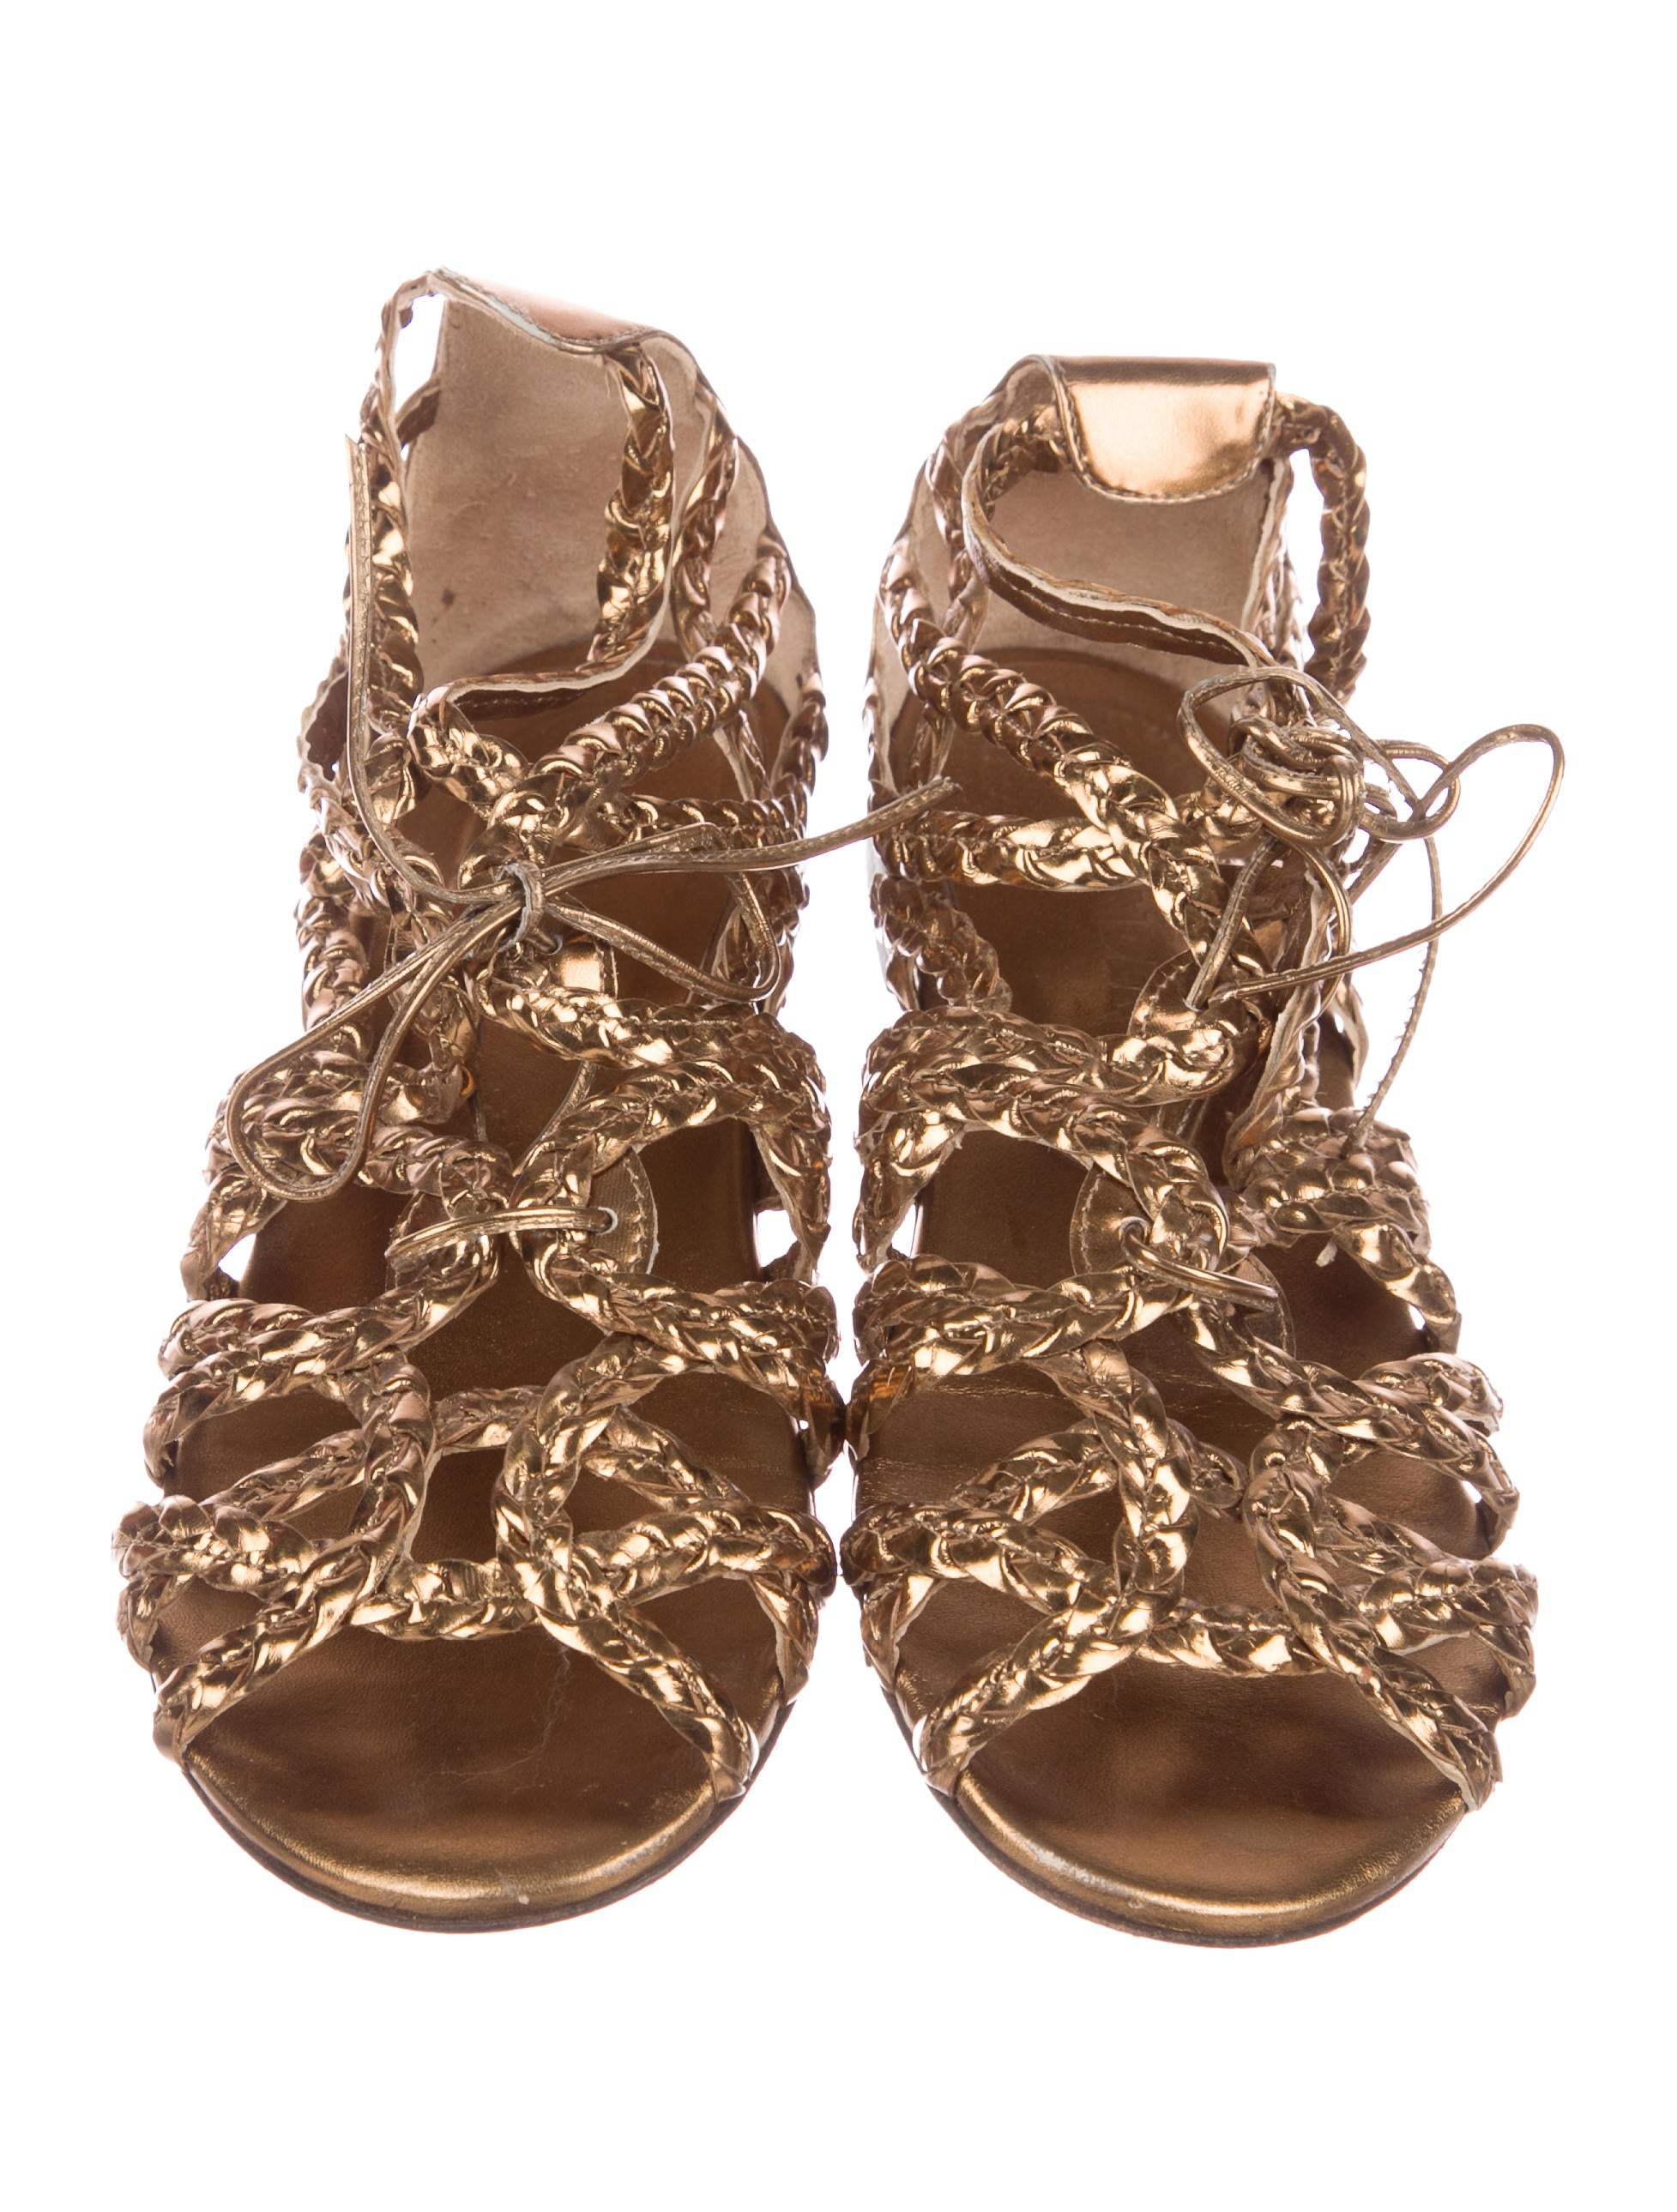 manchester great sale cheap price many kinds of for sale Jil Sander Braided Caged Sandals buy cheap online dHaaIi4aj